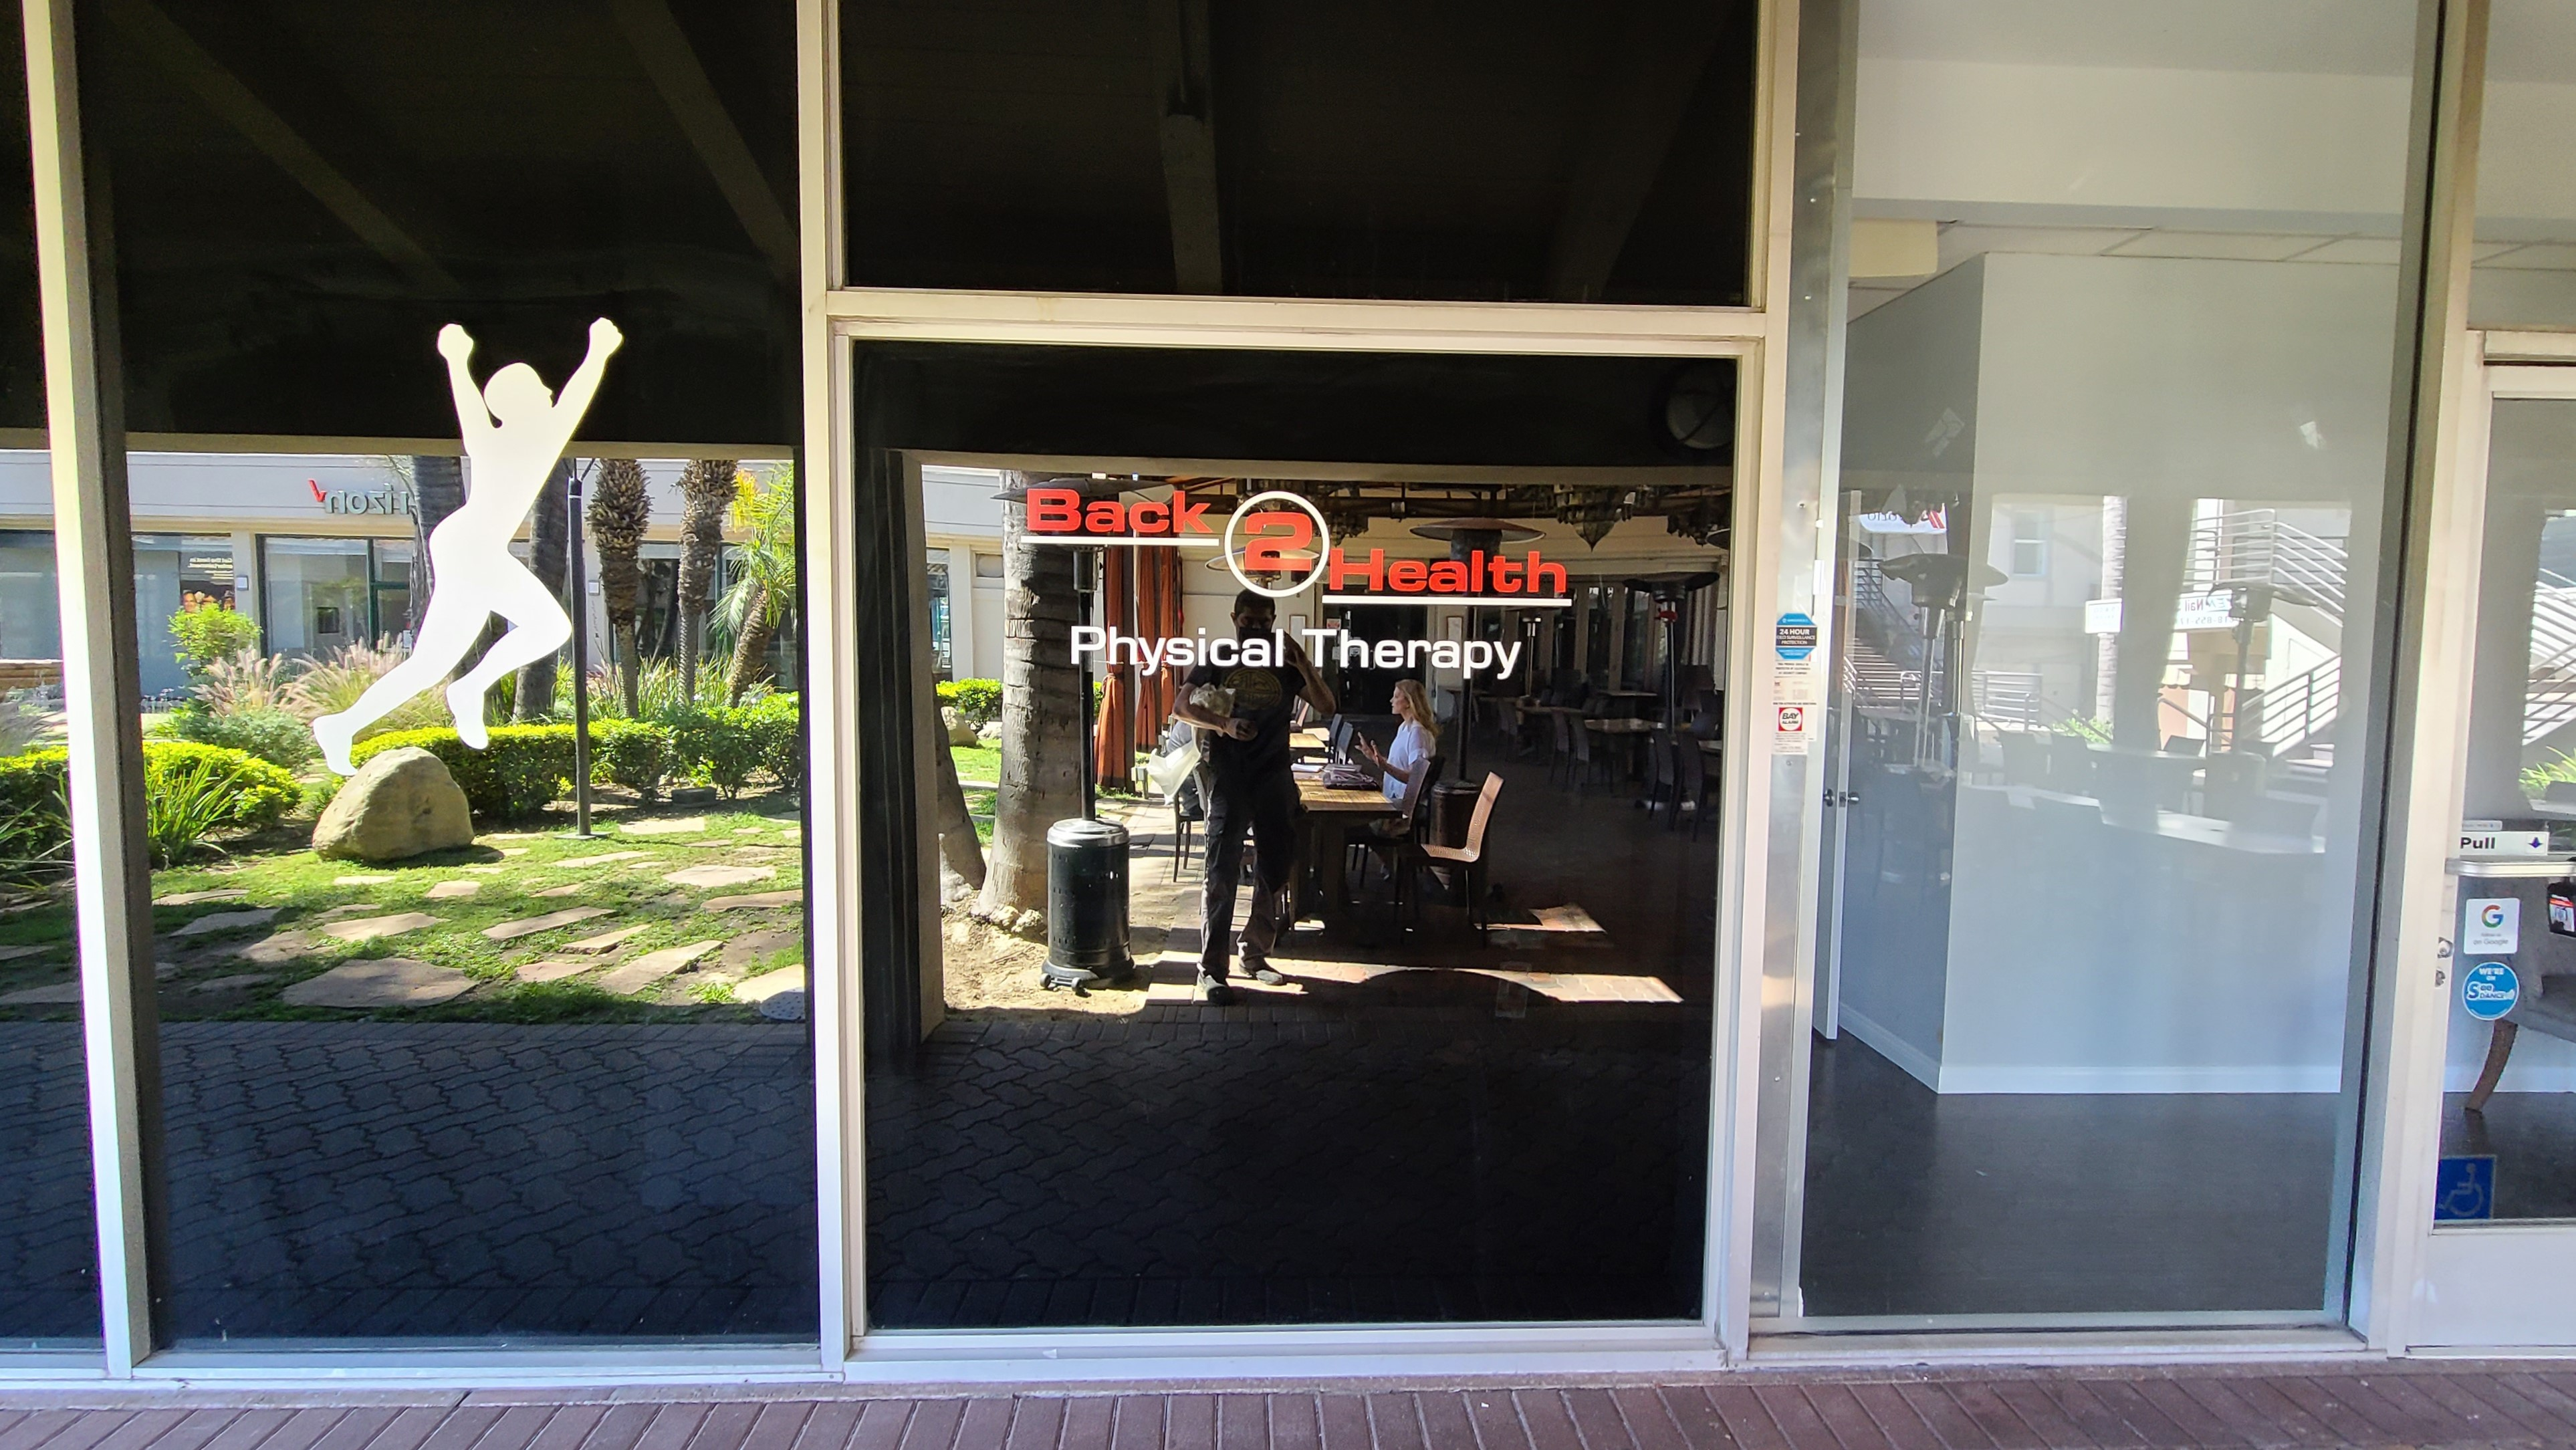 Part of the sign package we did for Back 2 Health, these window graphics decorate their door, greeting patients as they enter their Encino facility.